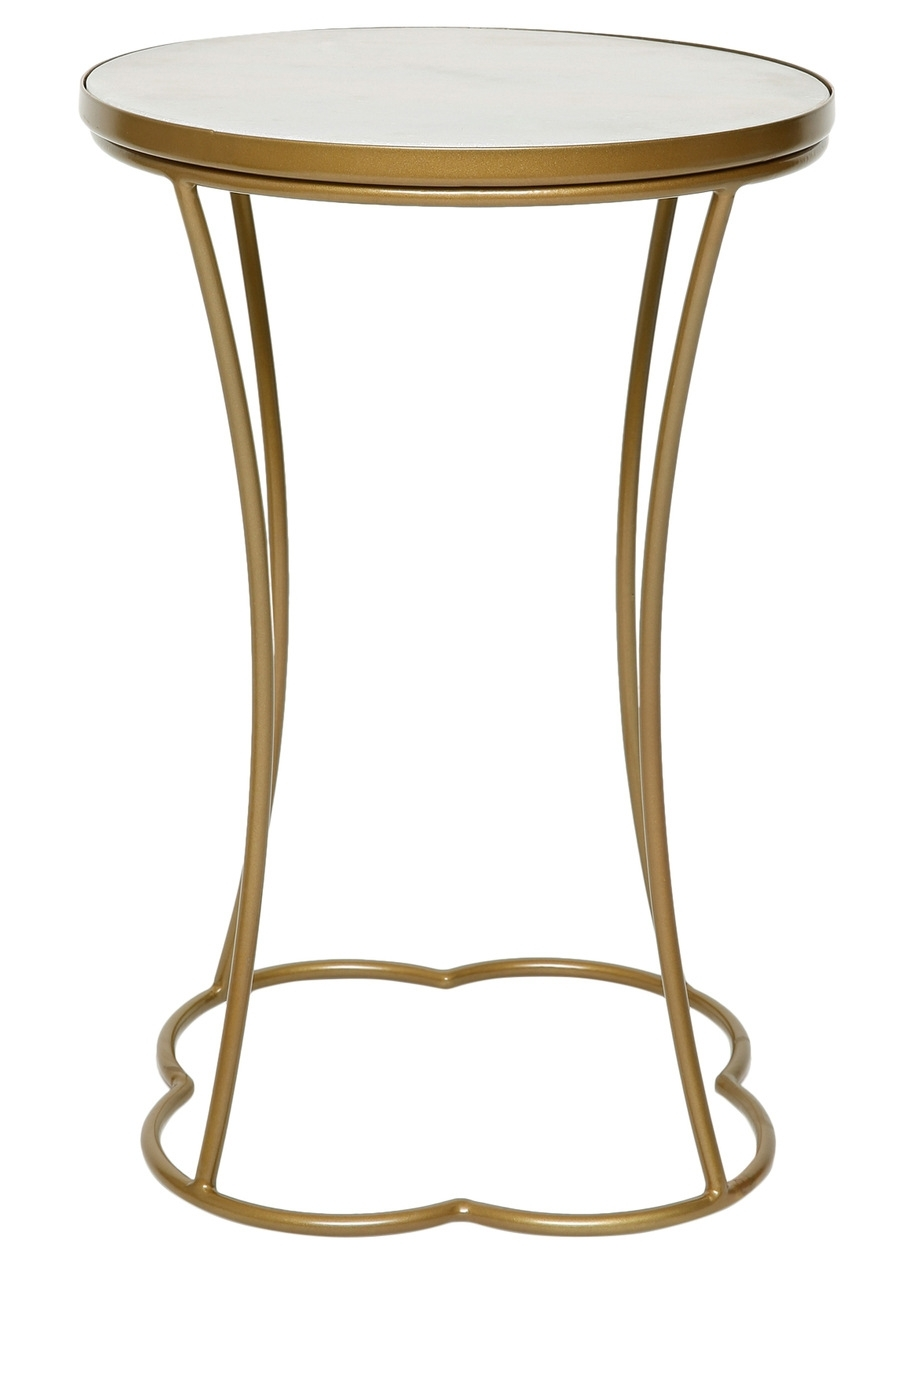 Heritage | Marrakech Round Side Table In Pale Gold Finish | Myer Online within Marrakesh Side Tables (Image 2 of 30)